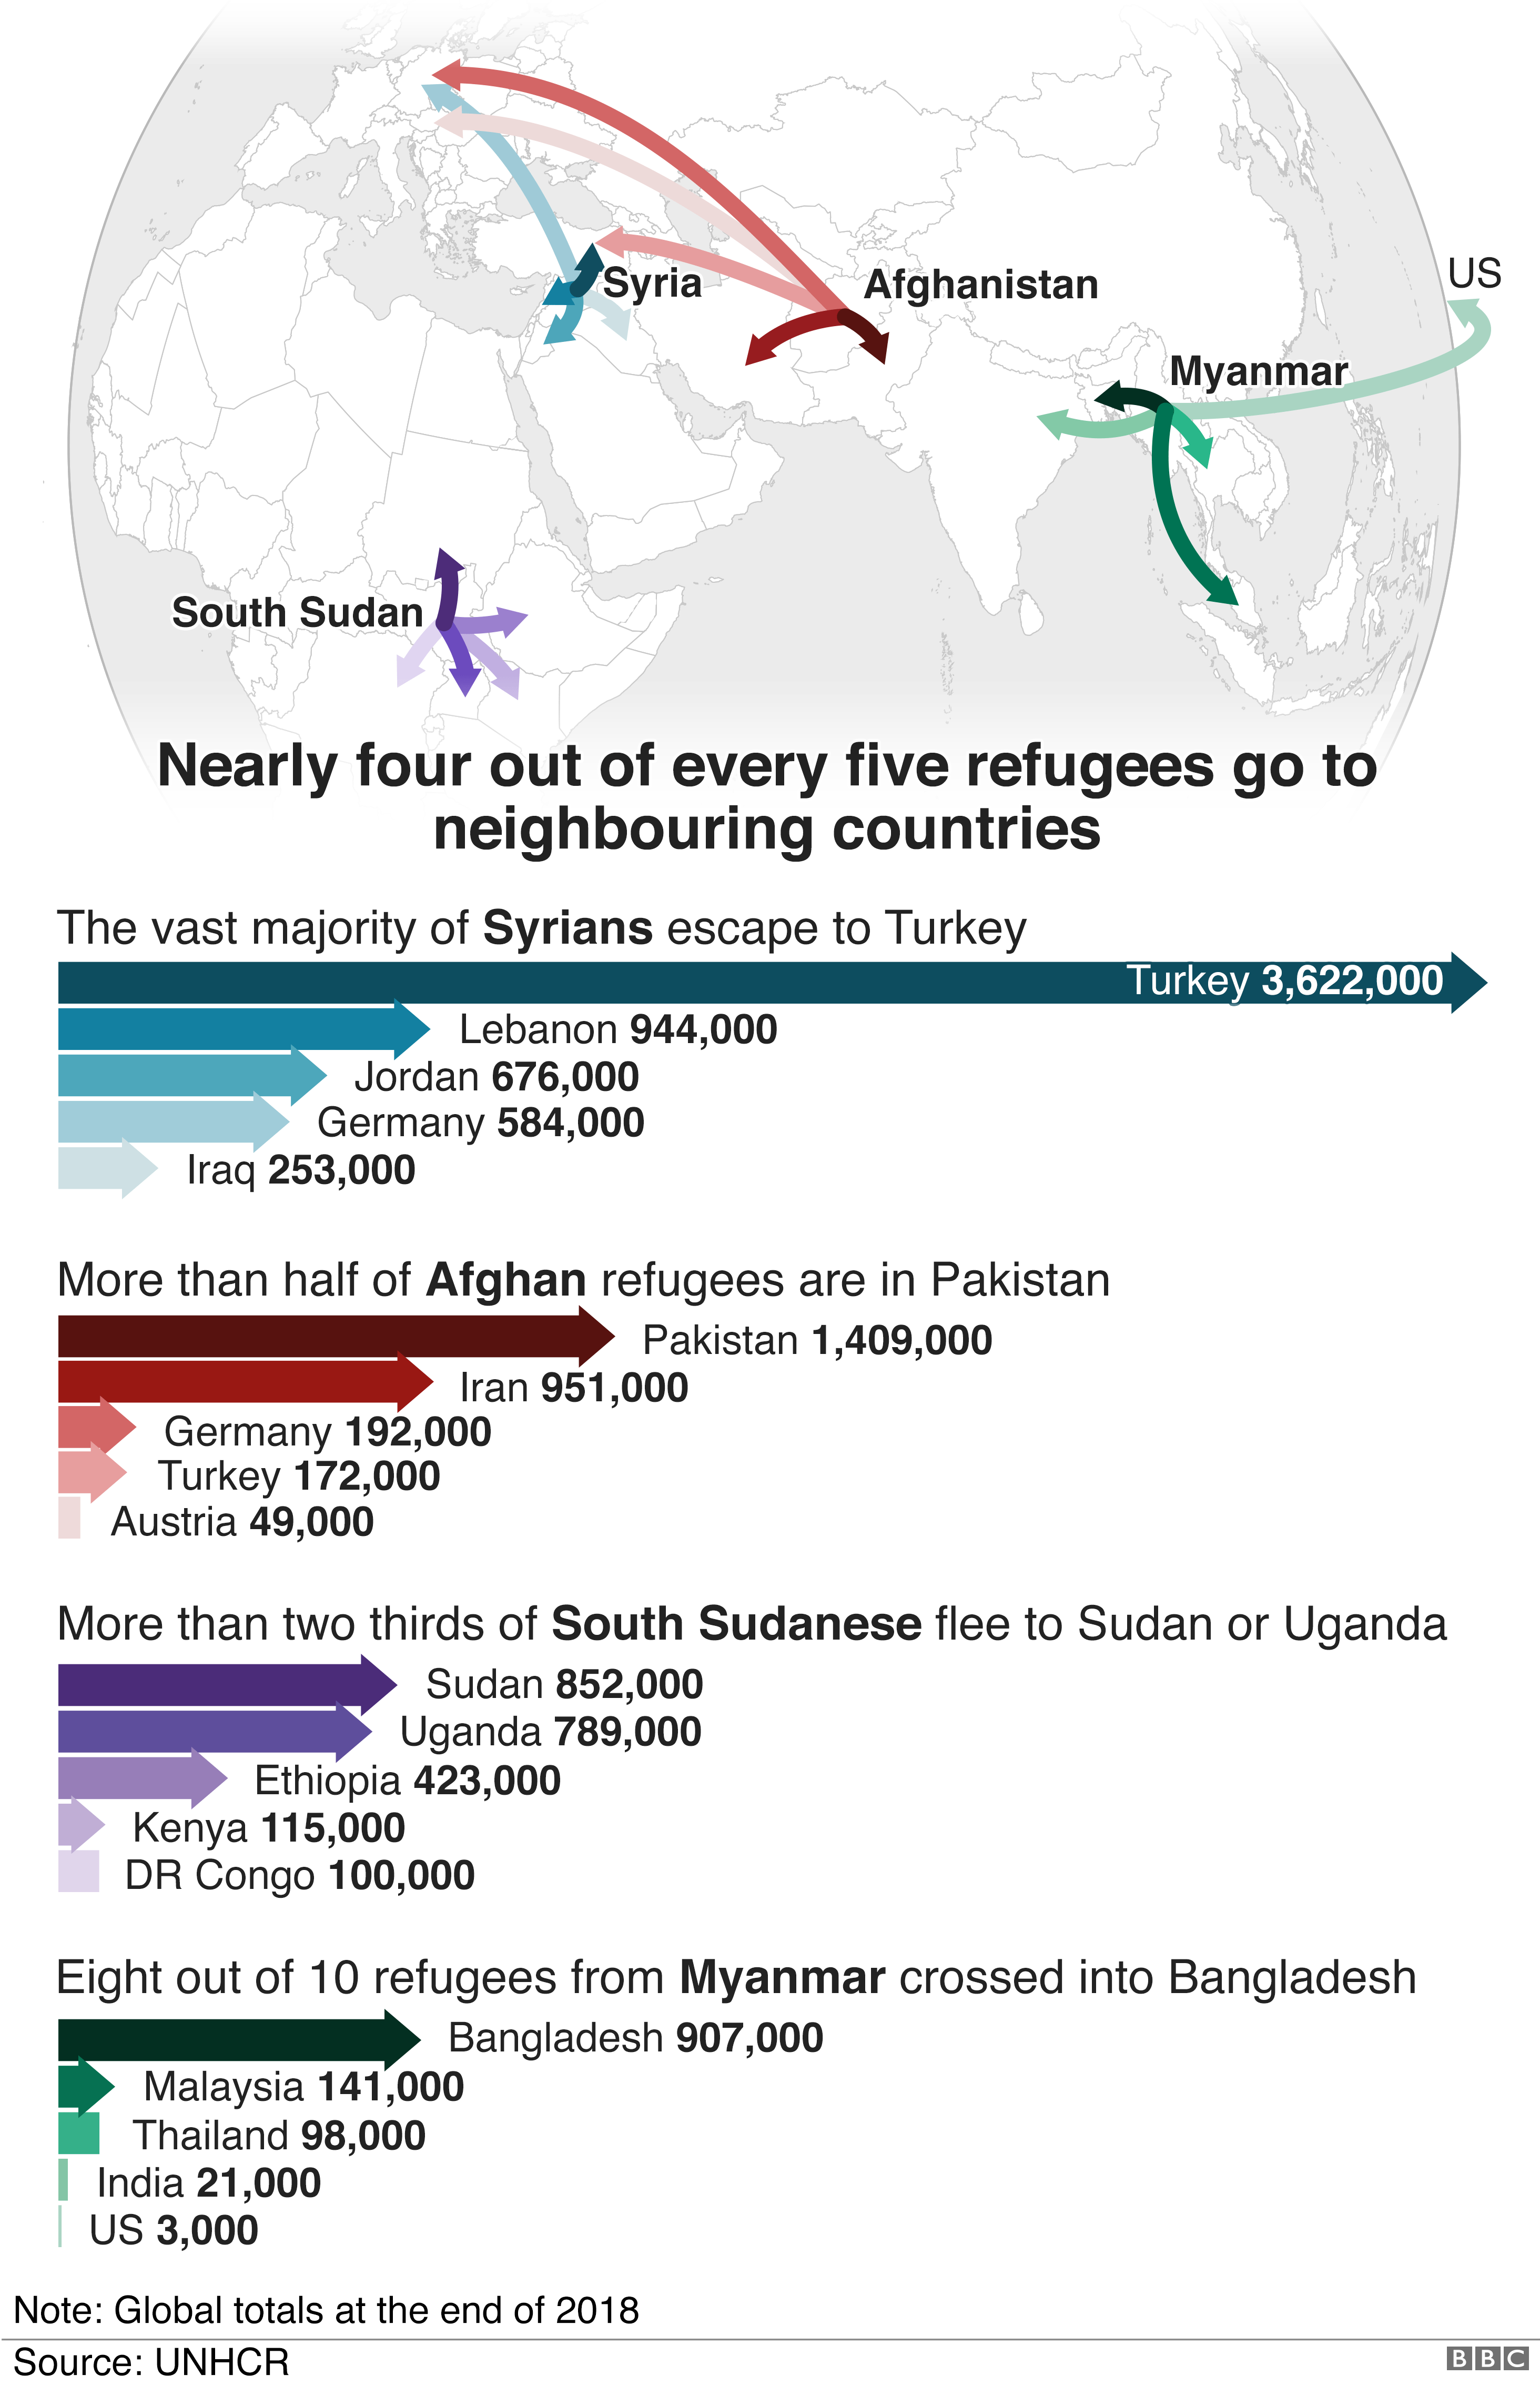 Maps showing where refugees travel to, with most Syrians moving to Turkey, Afghans to Pakistan, South Sudanese to Sudan or Uganda and those from Myanmar cross into Banglandesh